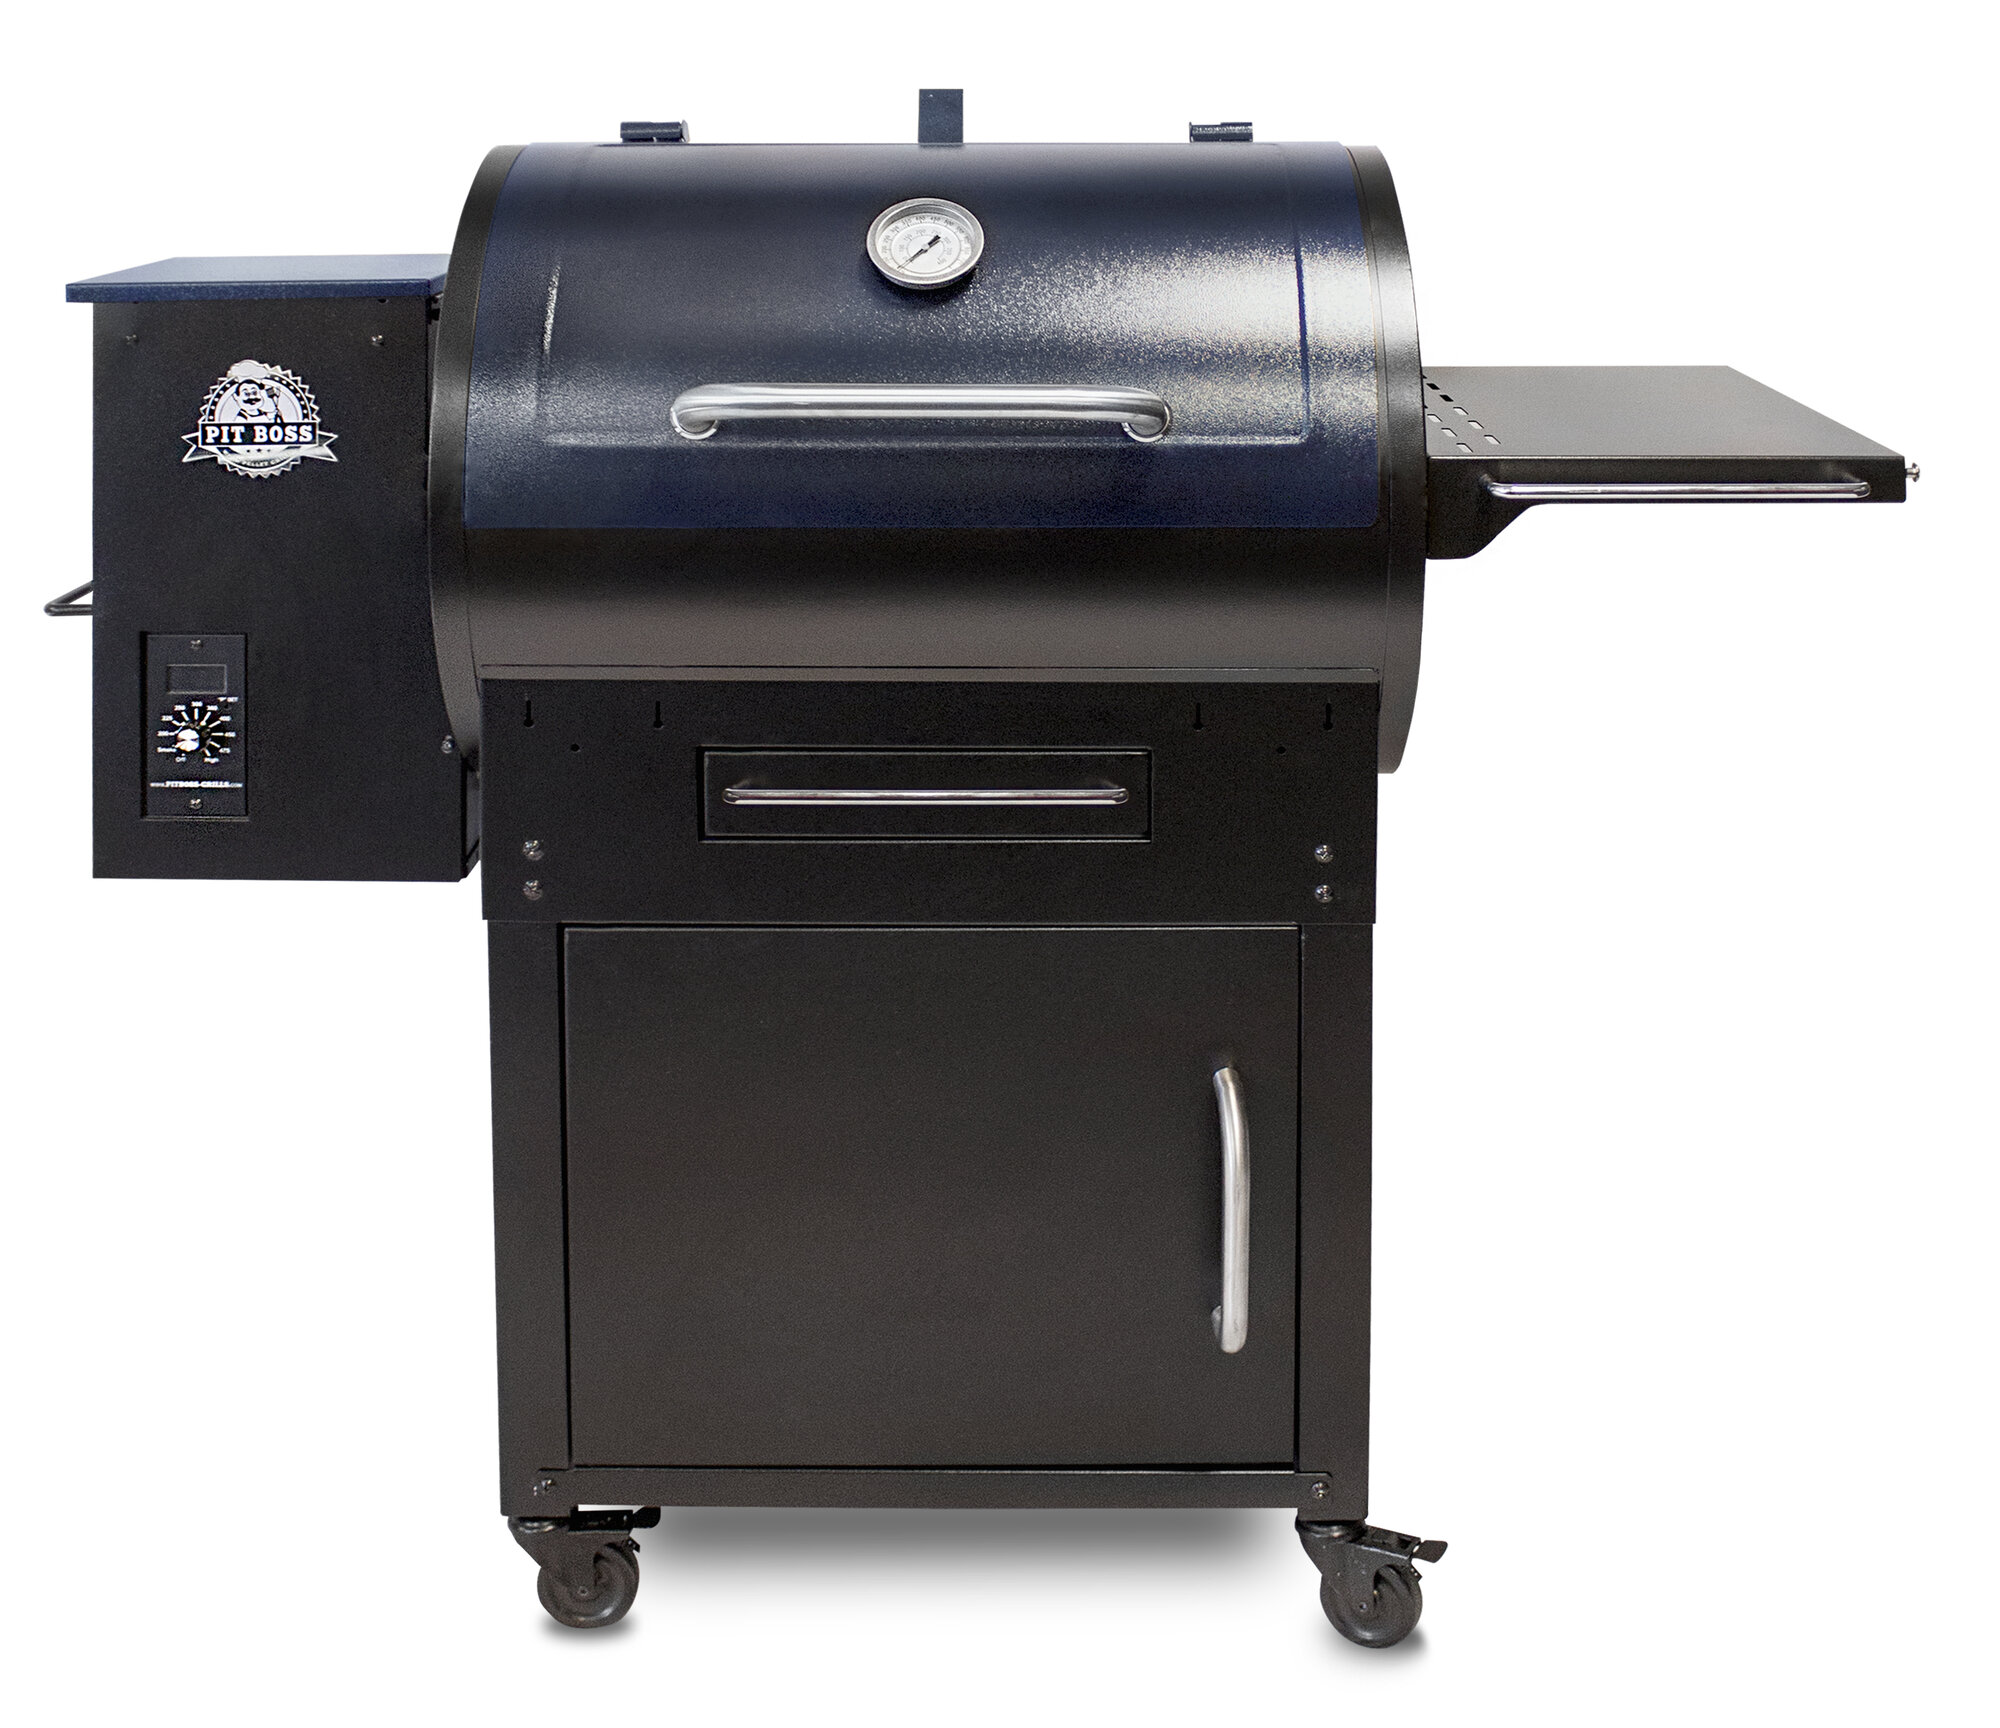 Pit boss pit boss 700sc wood pellet grill with smoker ebay - Pellet grills and smokers ...